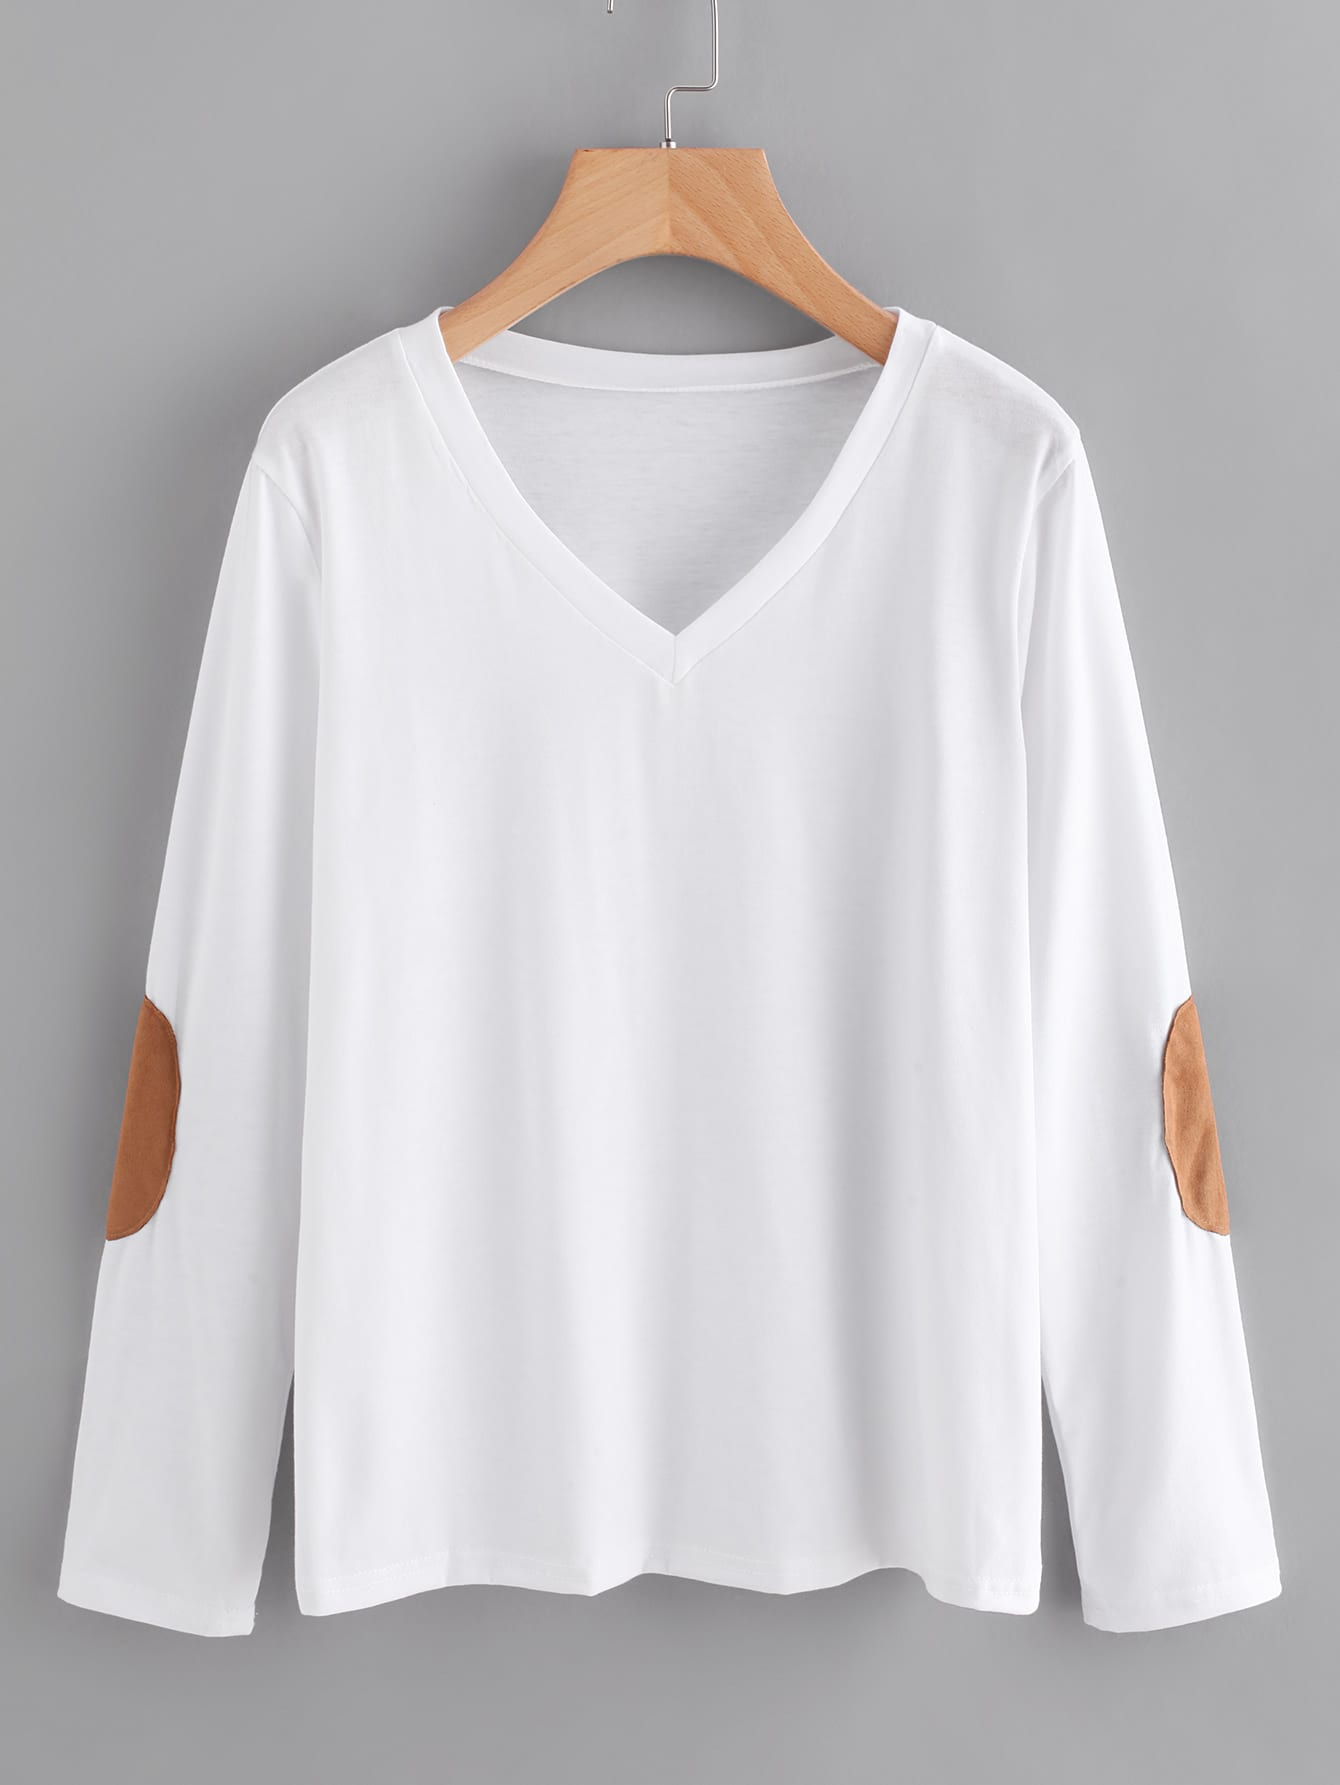 V Neckline Elbow Patch T-shirt  цена и фото